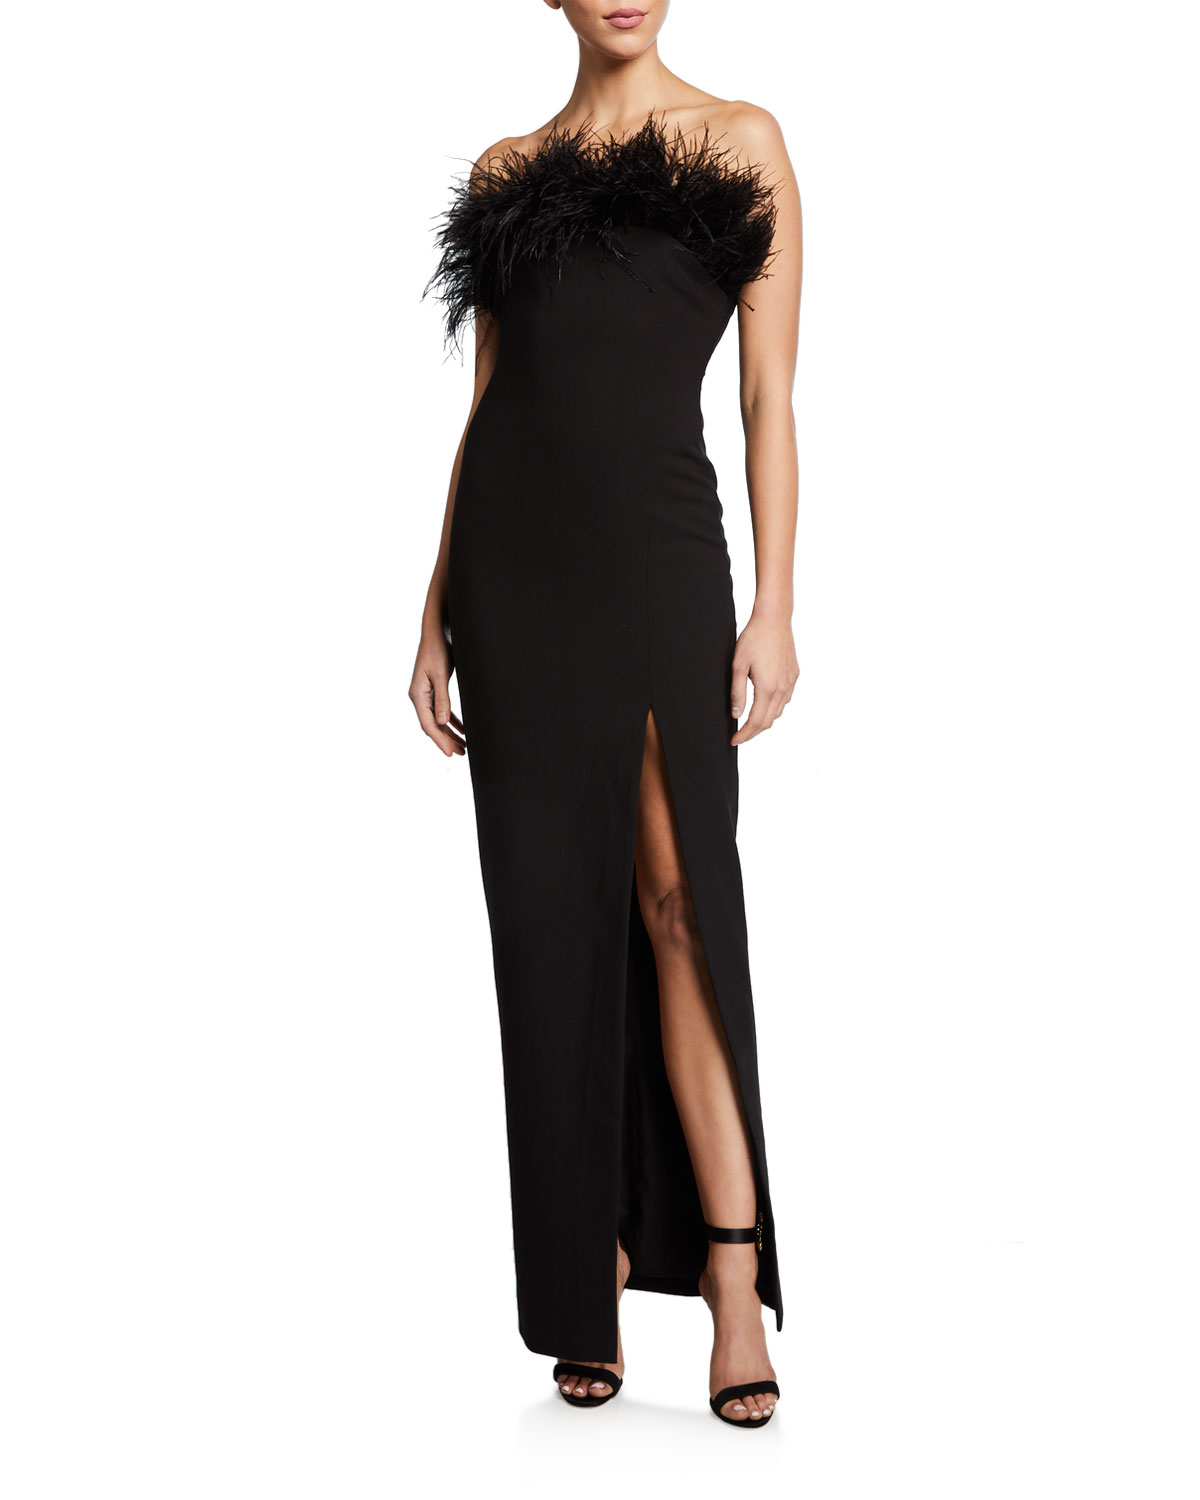 Likely Tops DESI STRAPLESS COLUMN GOWN WITH FEATHERS